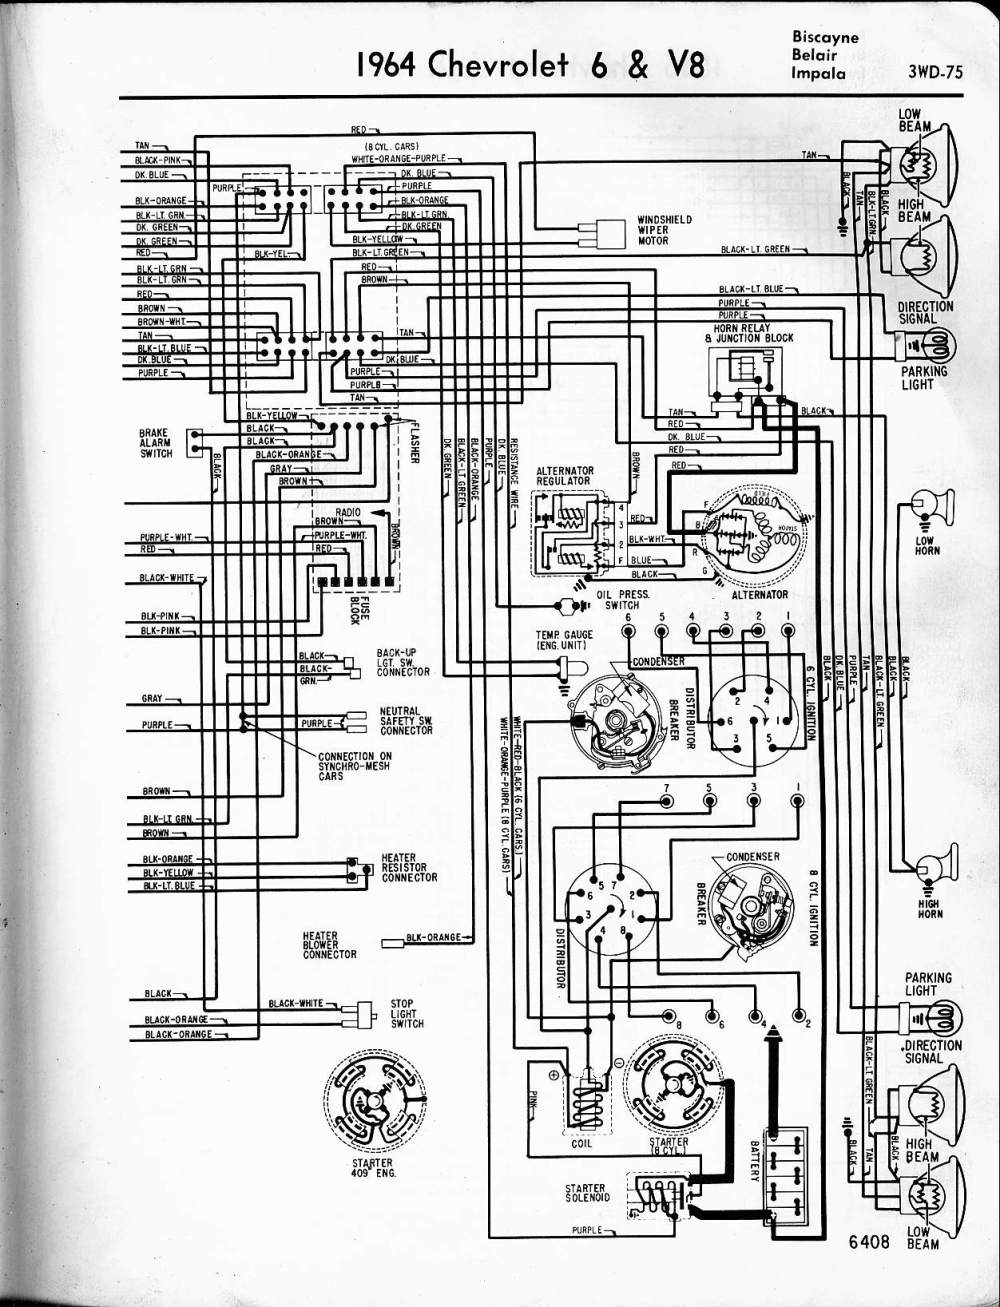 medium resolution of 1964 chevy impala turn signal wiring diagram wiring schematic63 chevy impala wiring diagram wiring diagram blog